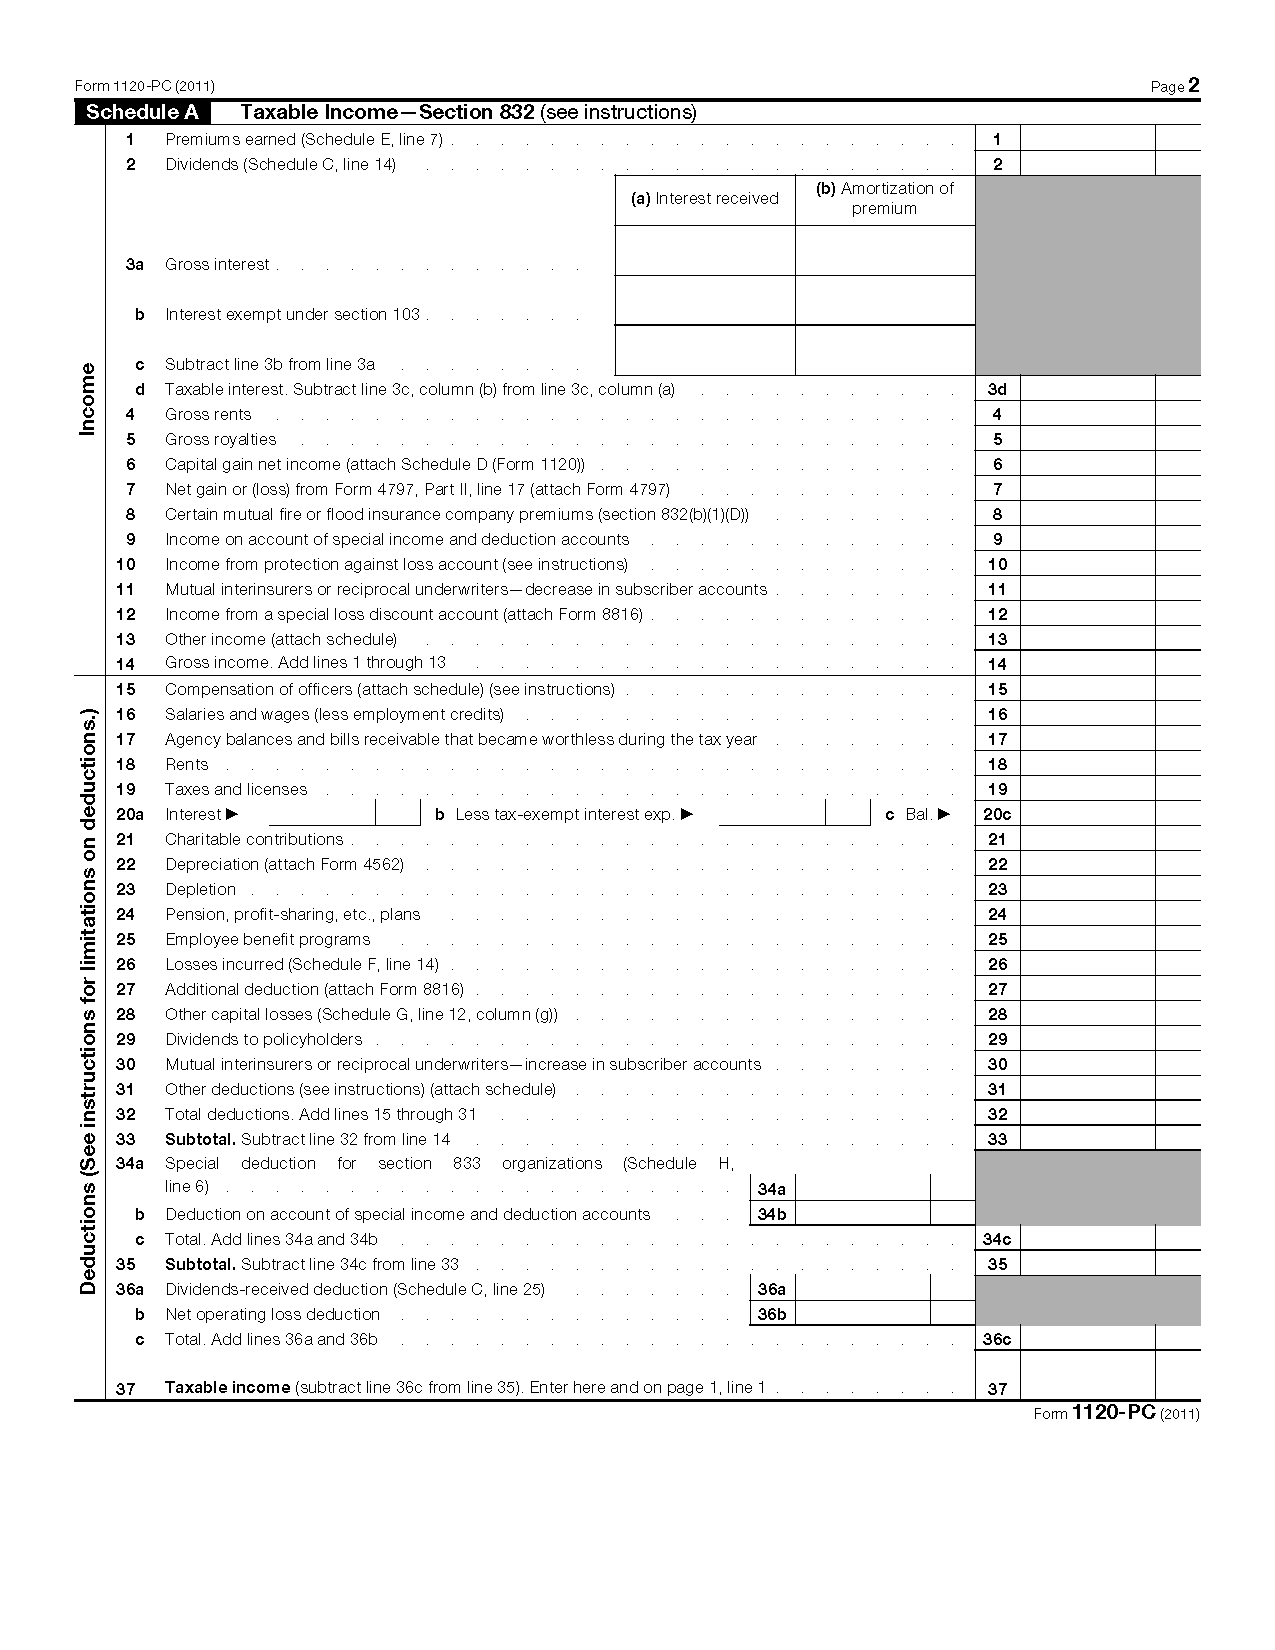 Form 1120 pc us property and casualty insurance company income tax view all 2011 irs tax forms falaconquin